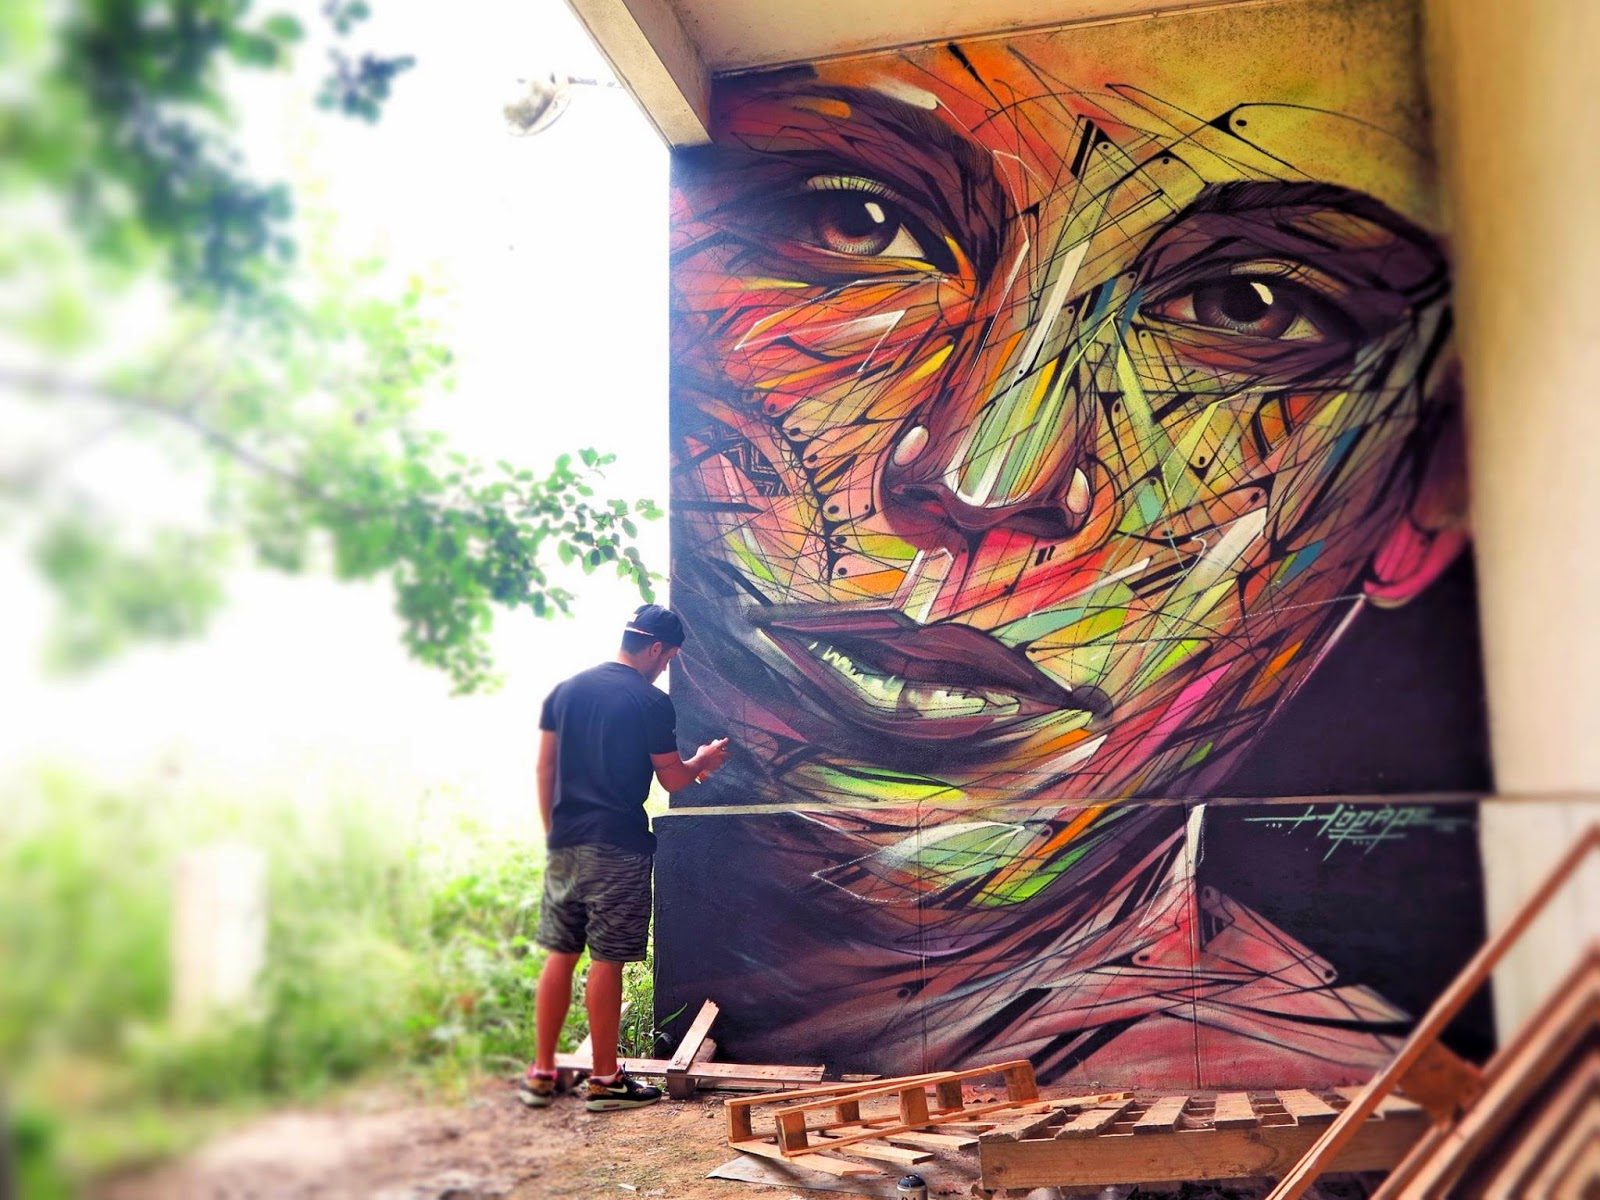 While we last heard from him in China earlier this month, Hopare is back in Europe where he just finished working on this new mural somewhere in Limours, a city in the Essonne department in northern France.